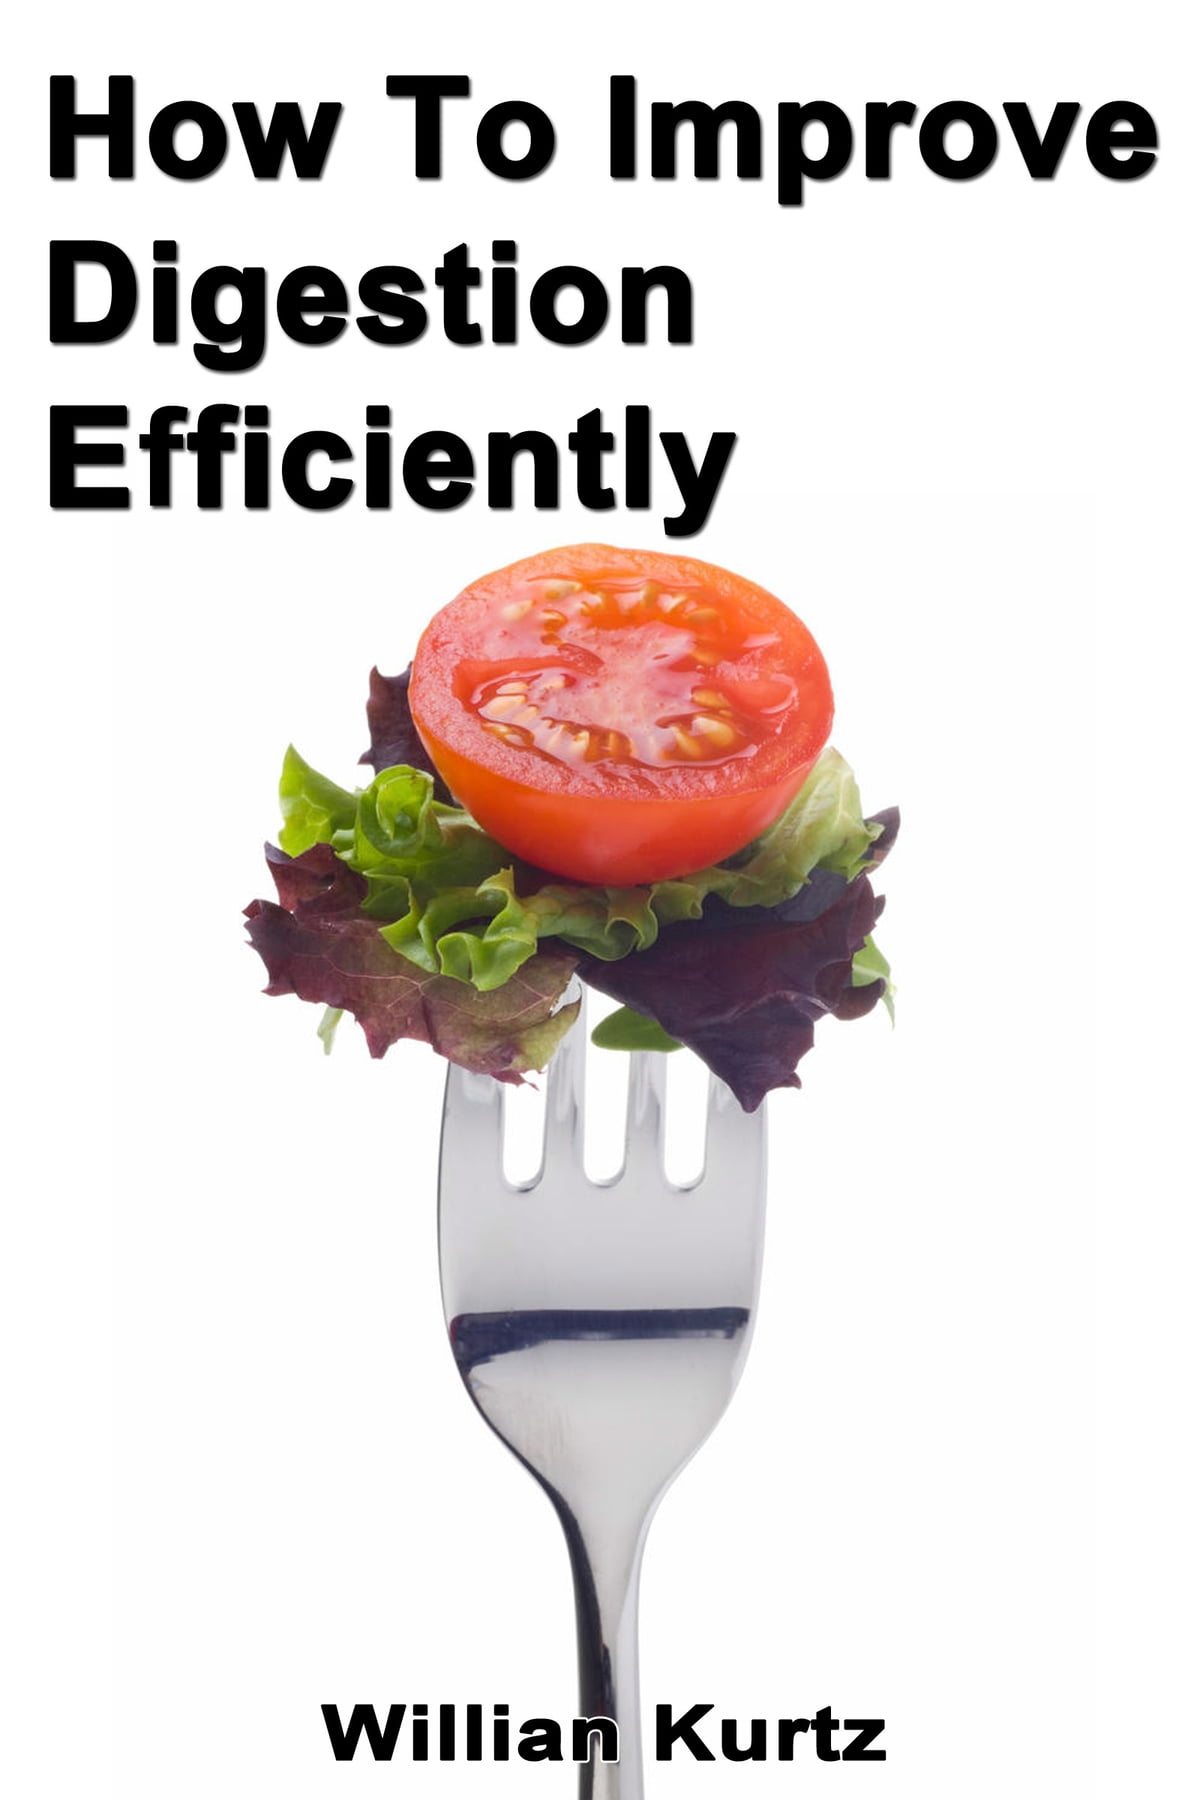 How To Improve Digestion Efficiently Ebook By Willian Kurtz